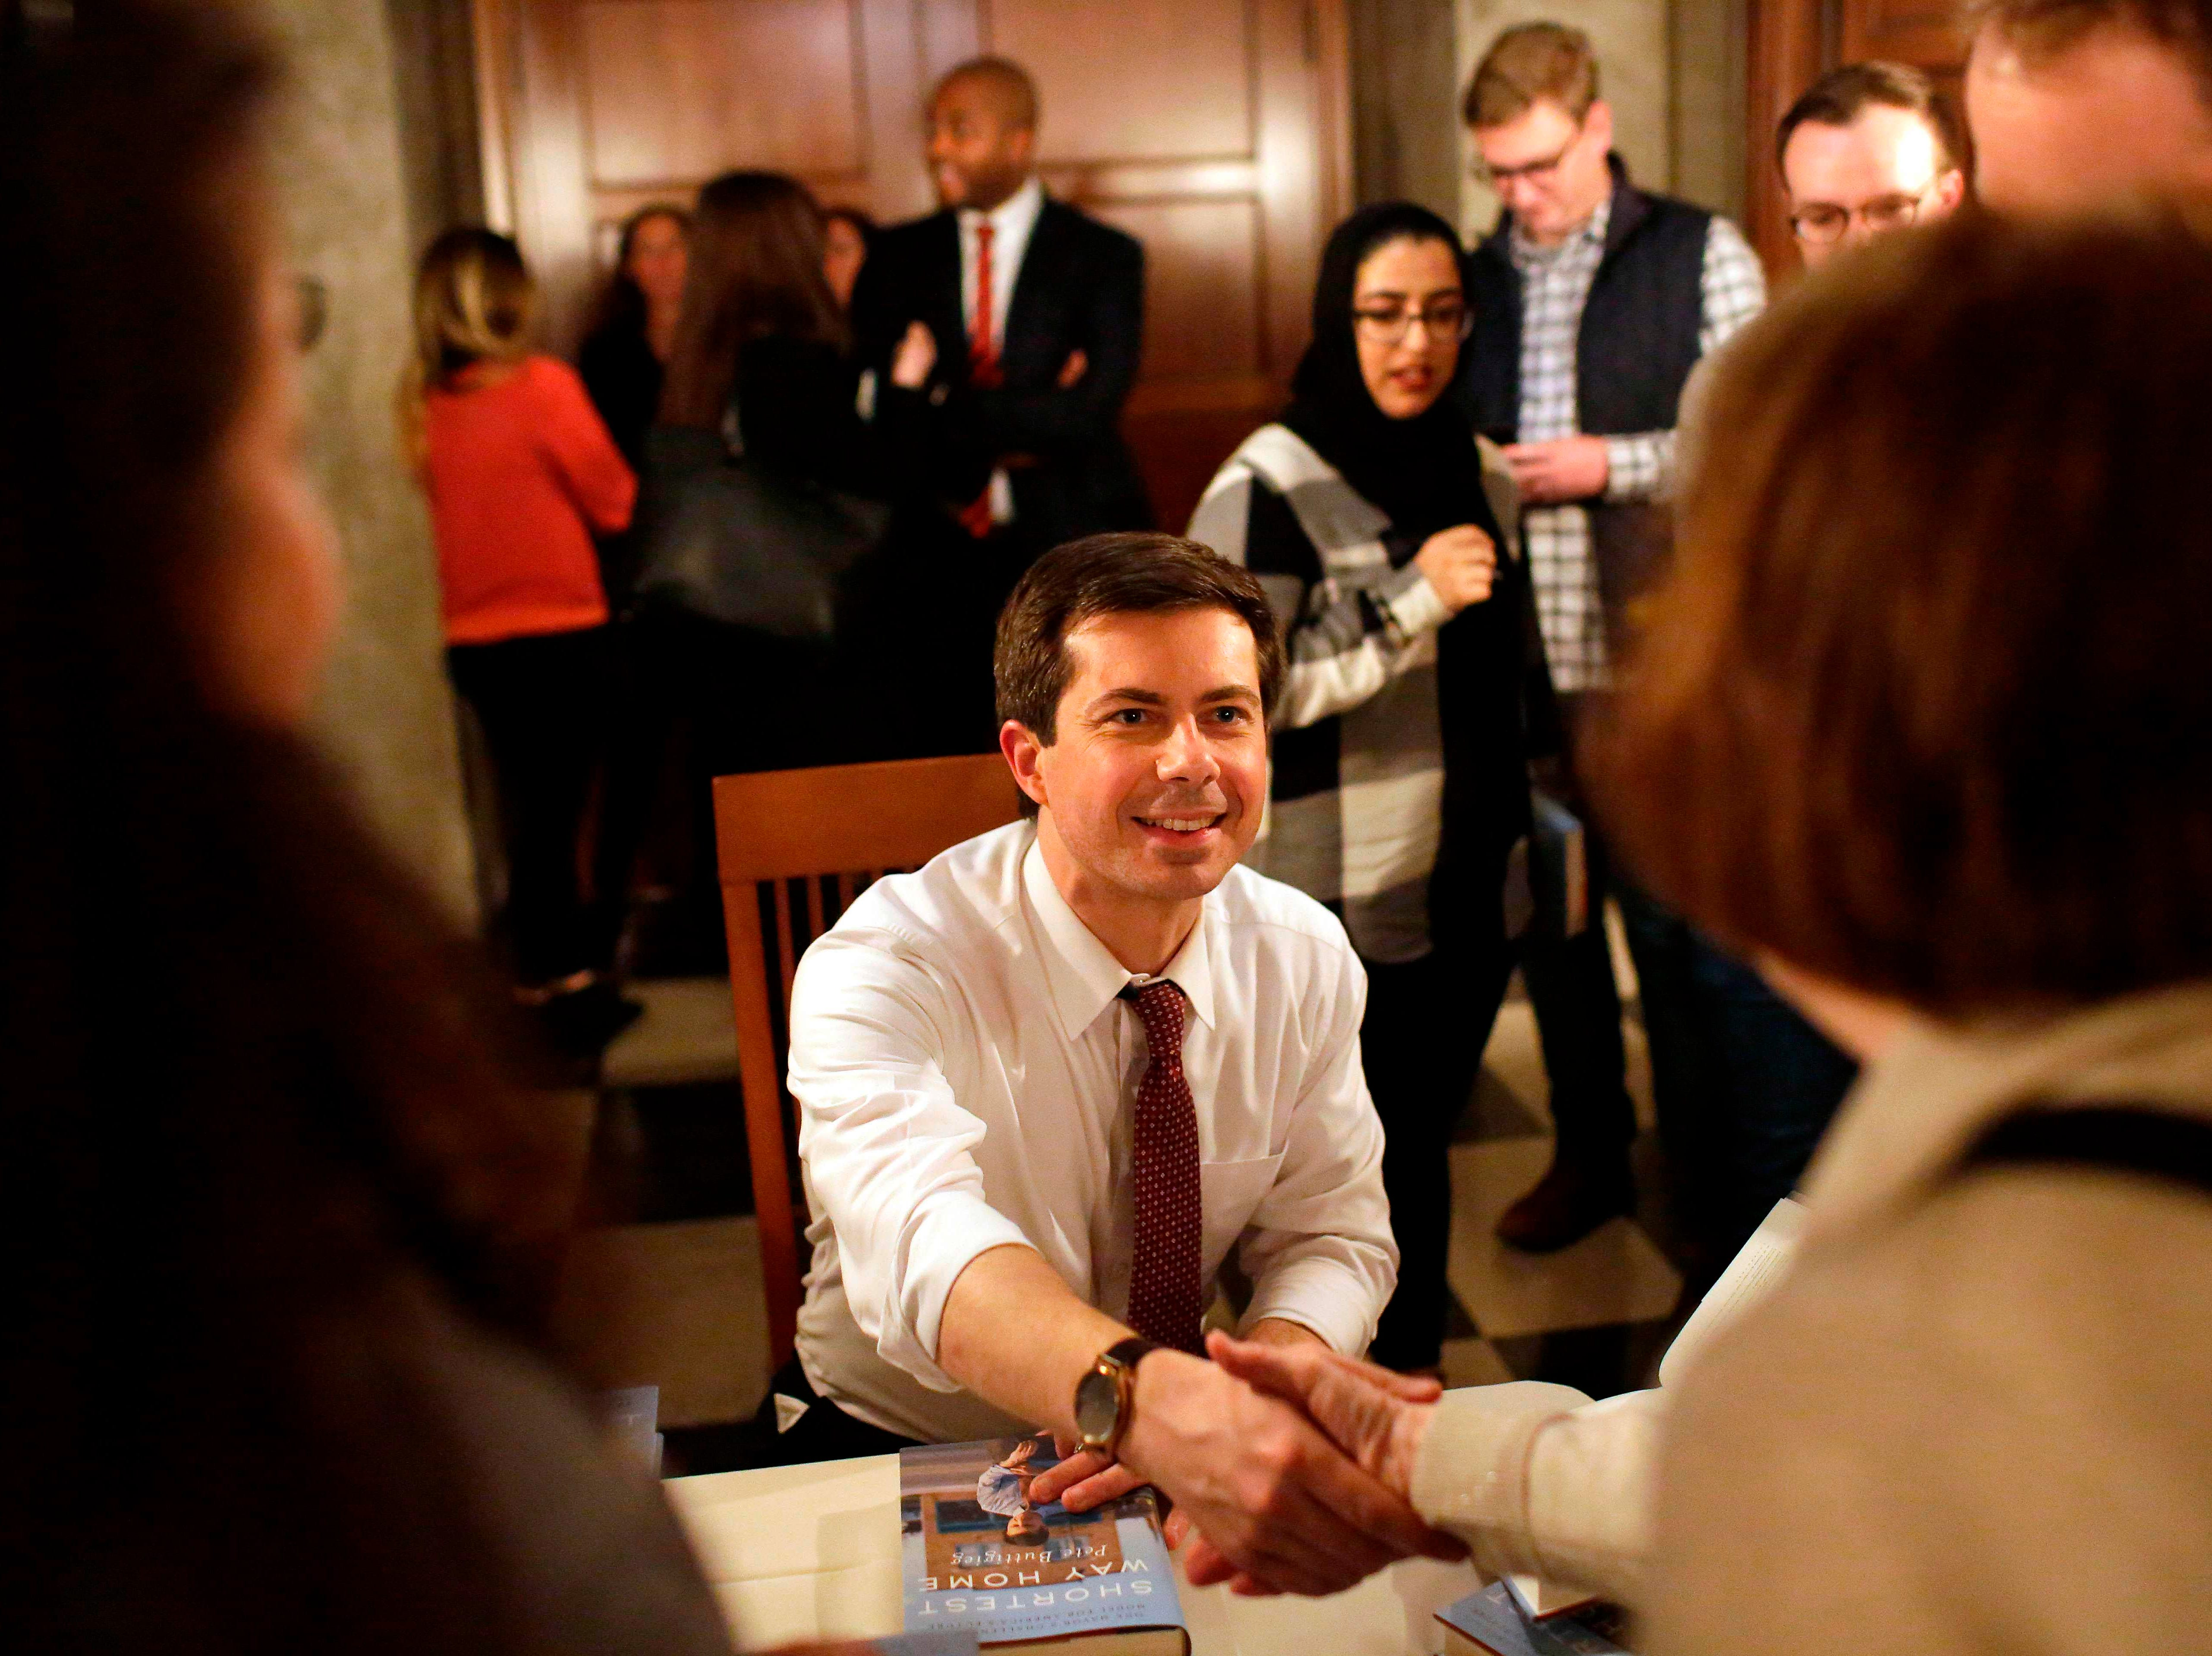 South Bend, Ind. Mayor Pete Buttigieg announced he was running for president on Jan. 23, 2019.